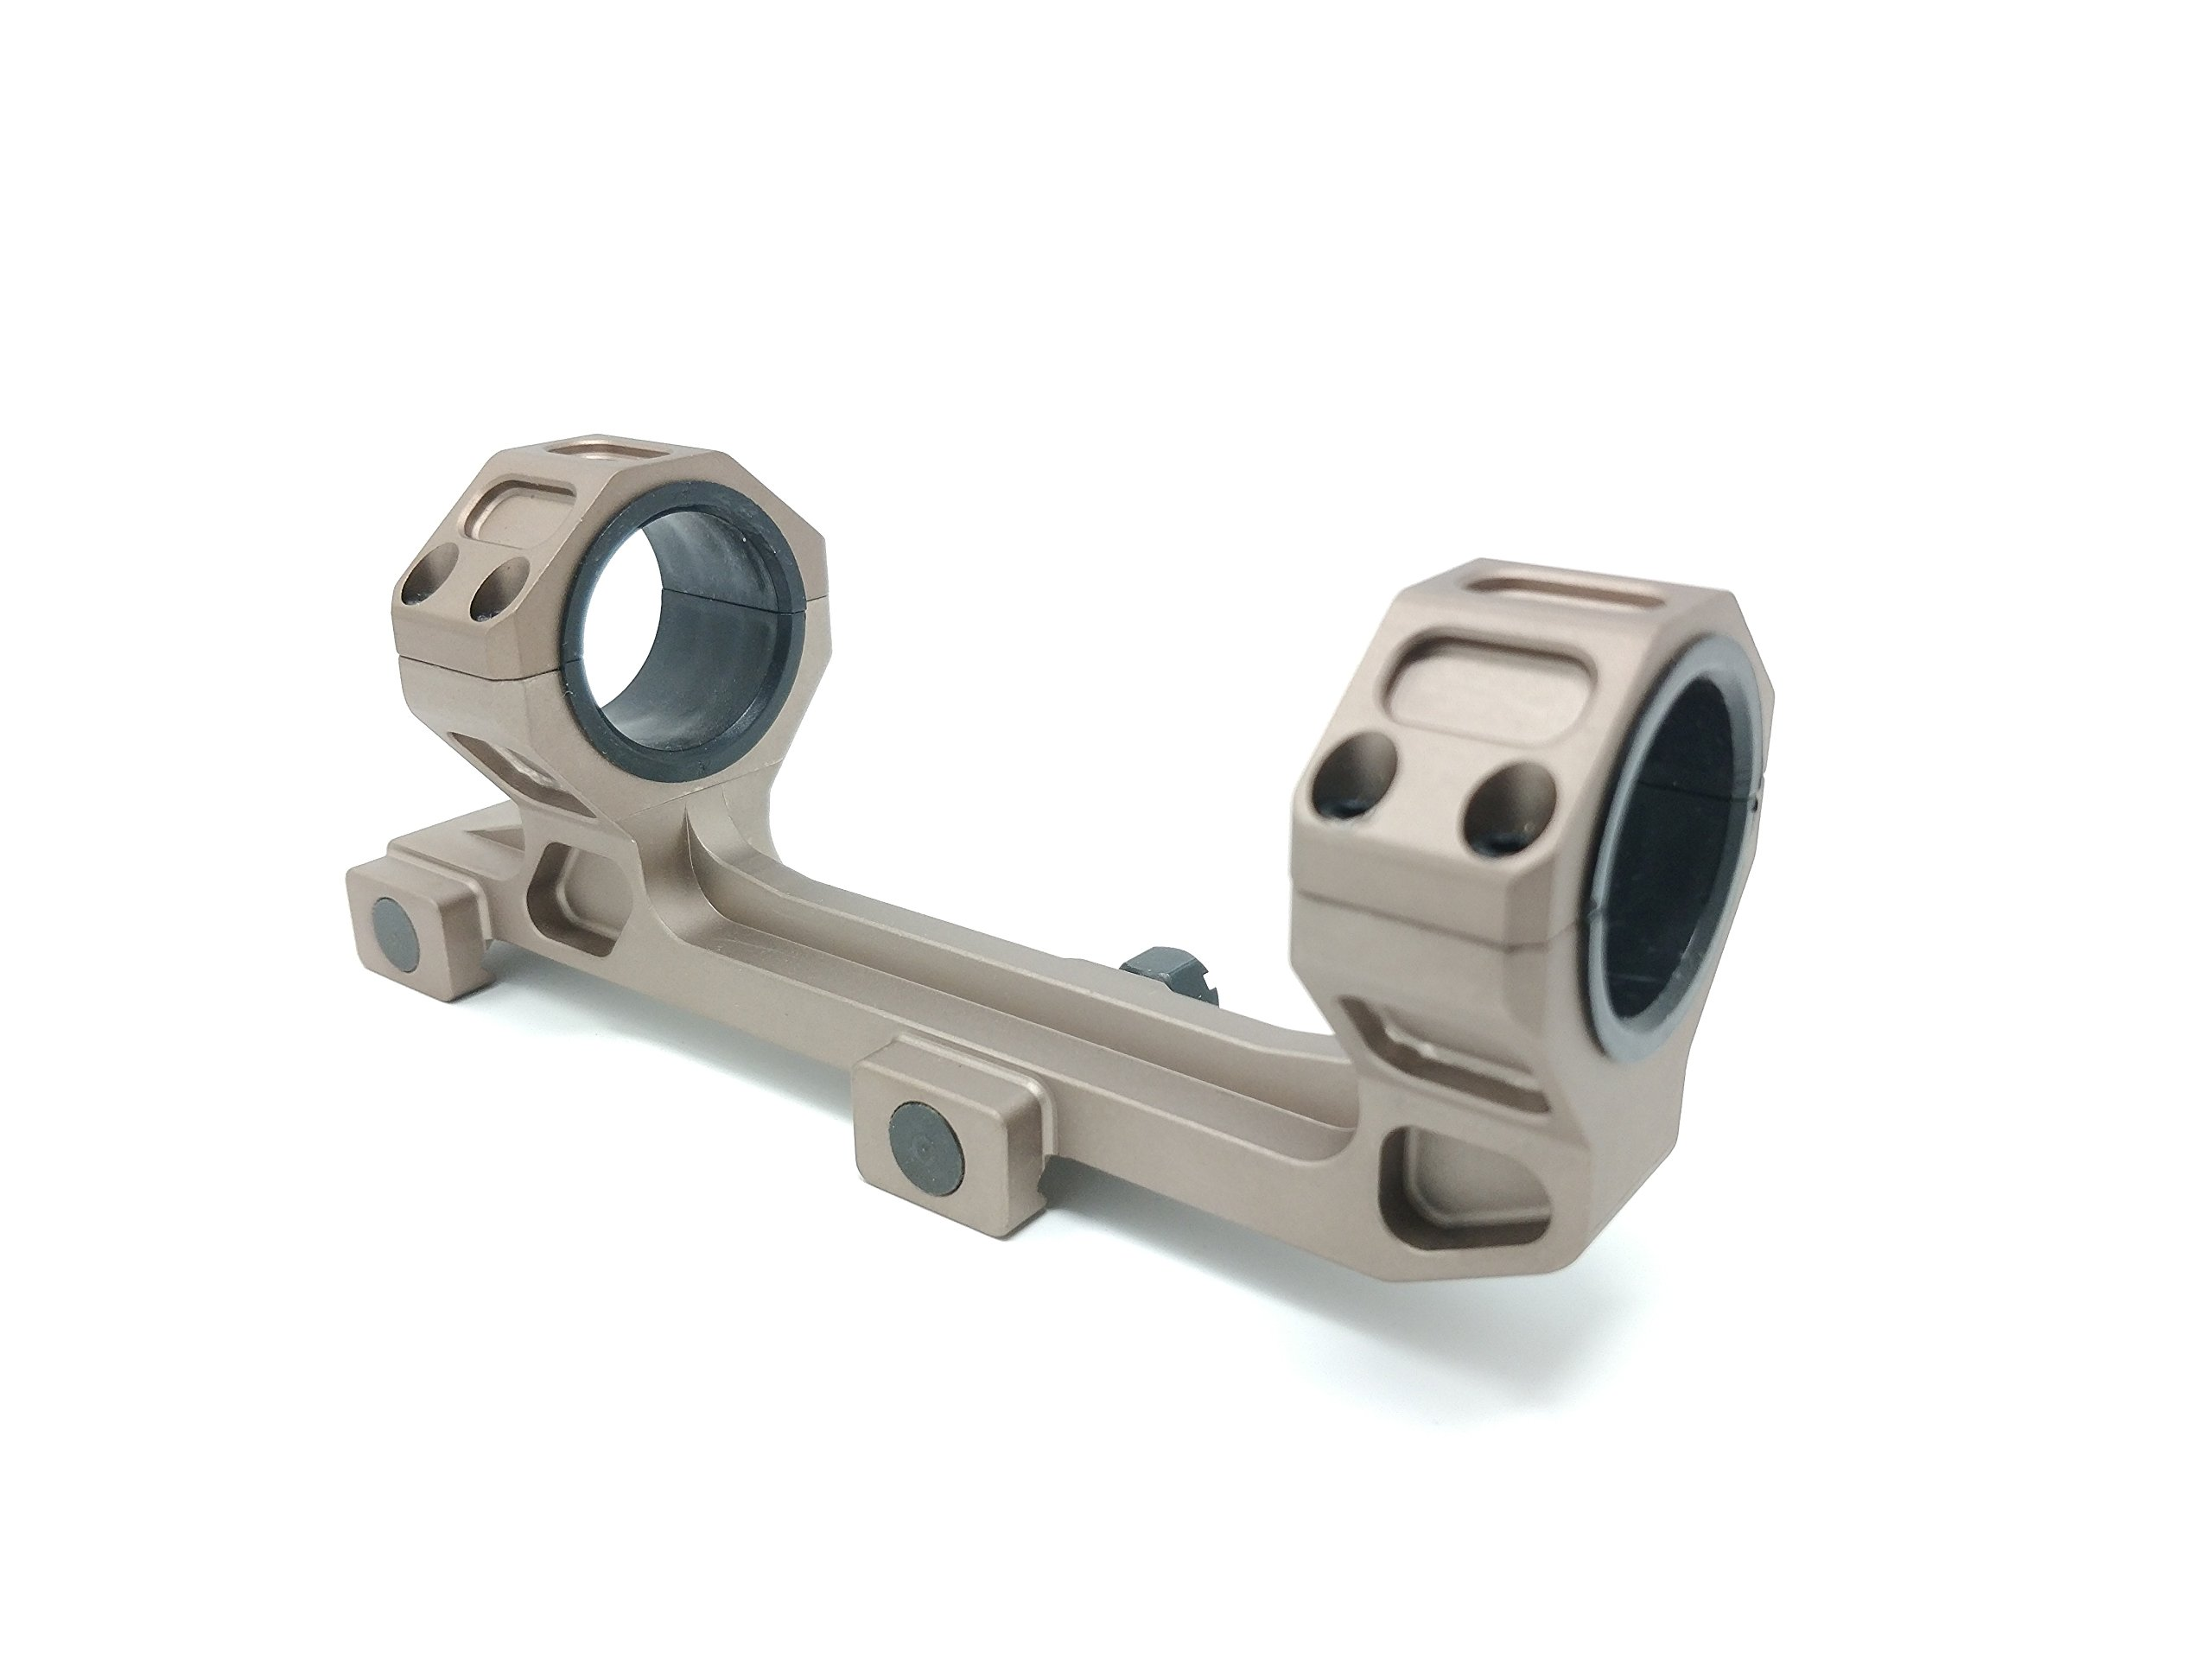 GE Bronze Rifle Scope Mount Rings 1'' / 30mm Cantilever for 20mm Picatinny Rail Optics 1 Inch Offset With Rear Level by GE Gold Rifle Scope Mount Rings 1'' / 30mm 2 Inch Offset With Level